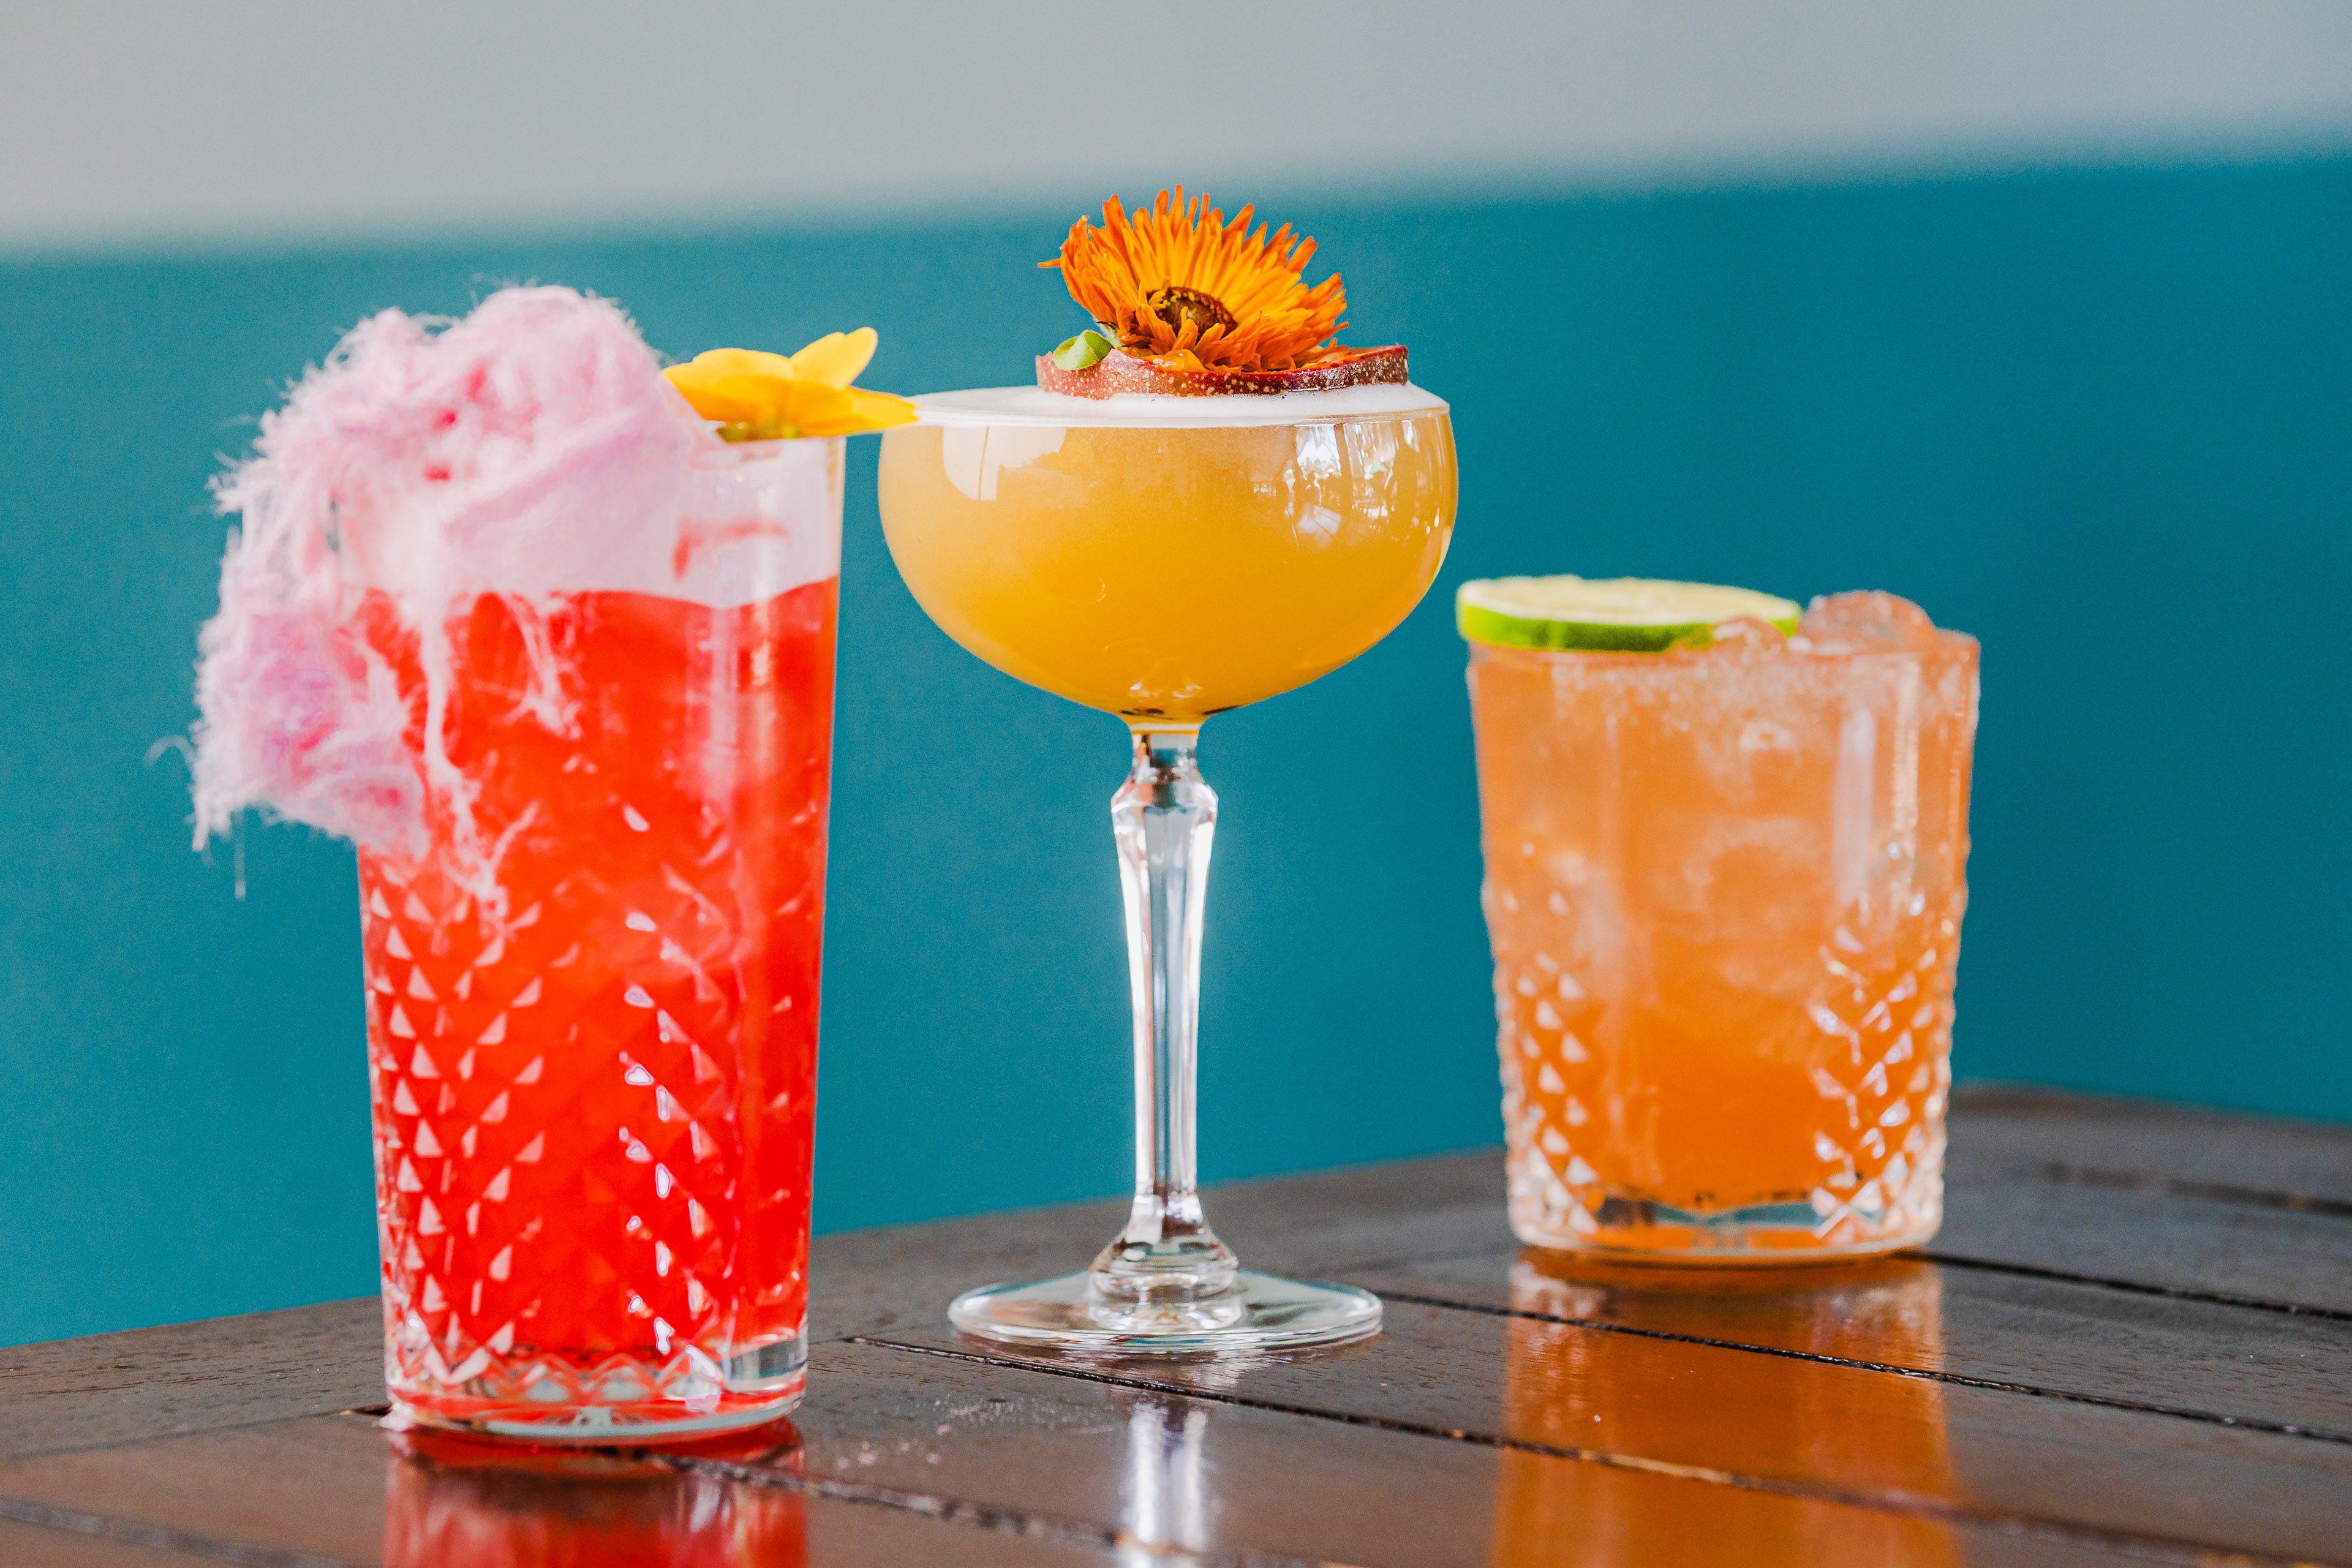 Three vibrant cocktails with an out of focus blue background